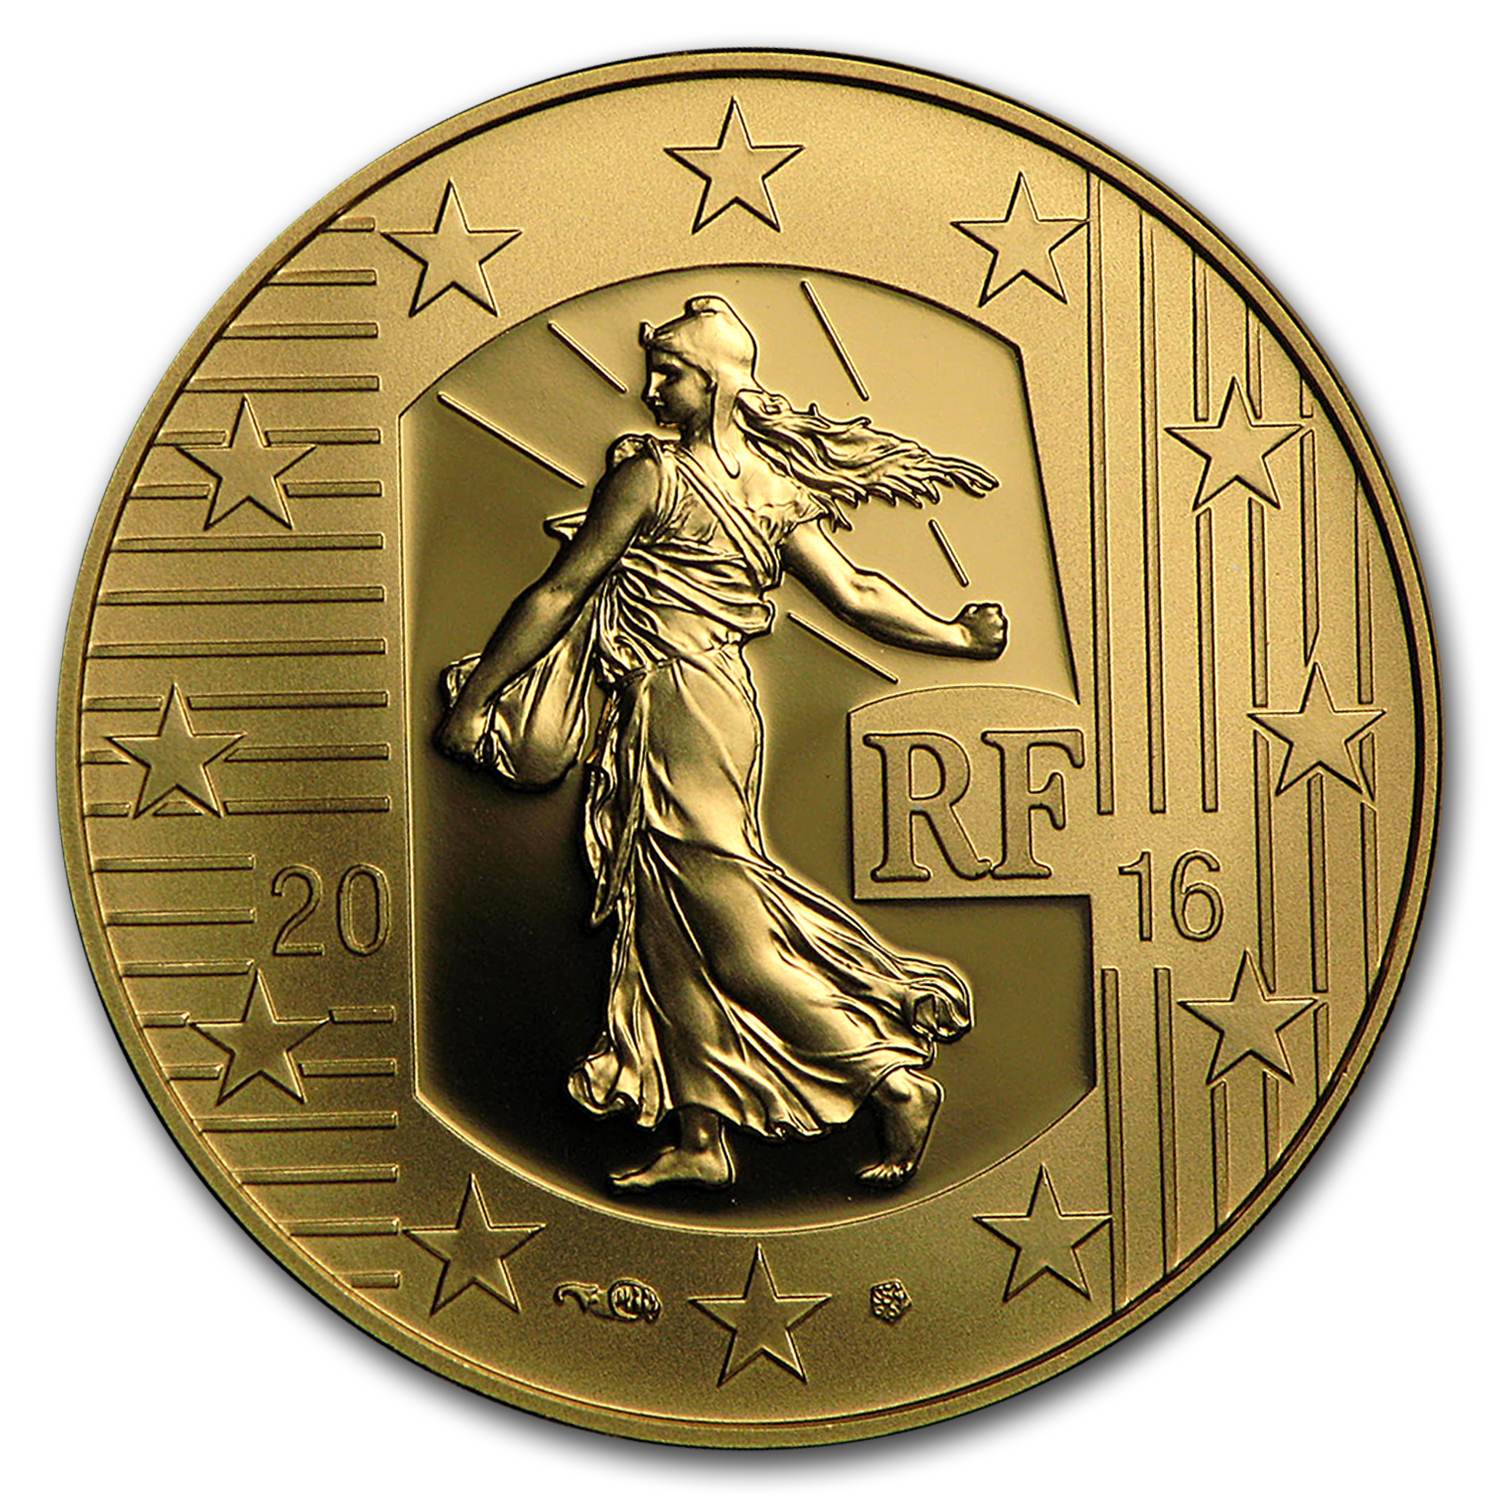 2016 1/4 oz Proof Gold €50 Sower (The Teston)